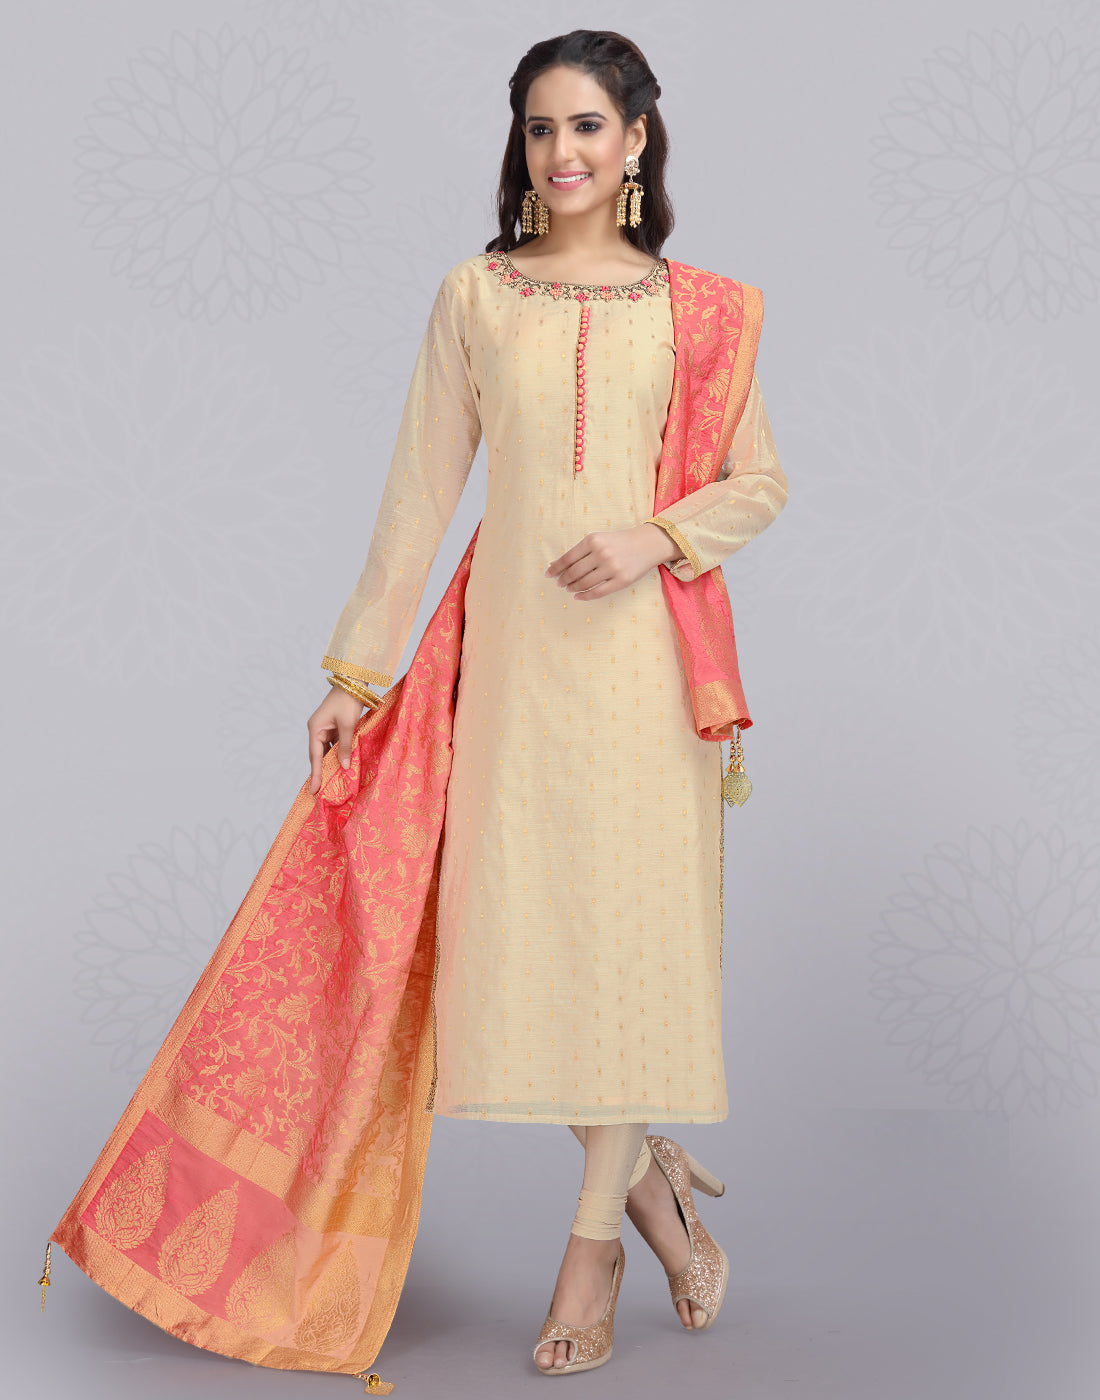 Sandal 'N' Pink Chanderi Cotton Salwar Suit